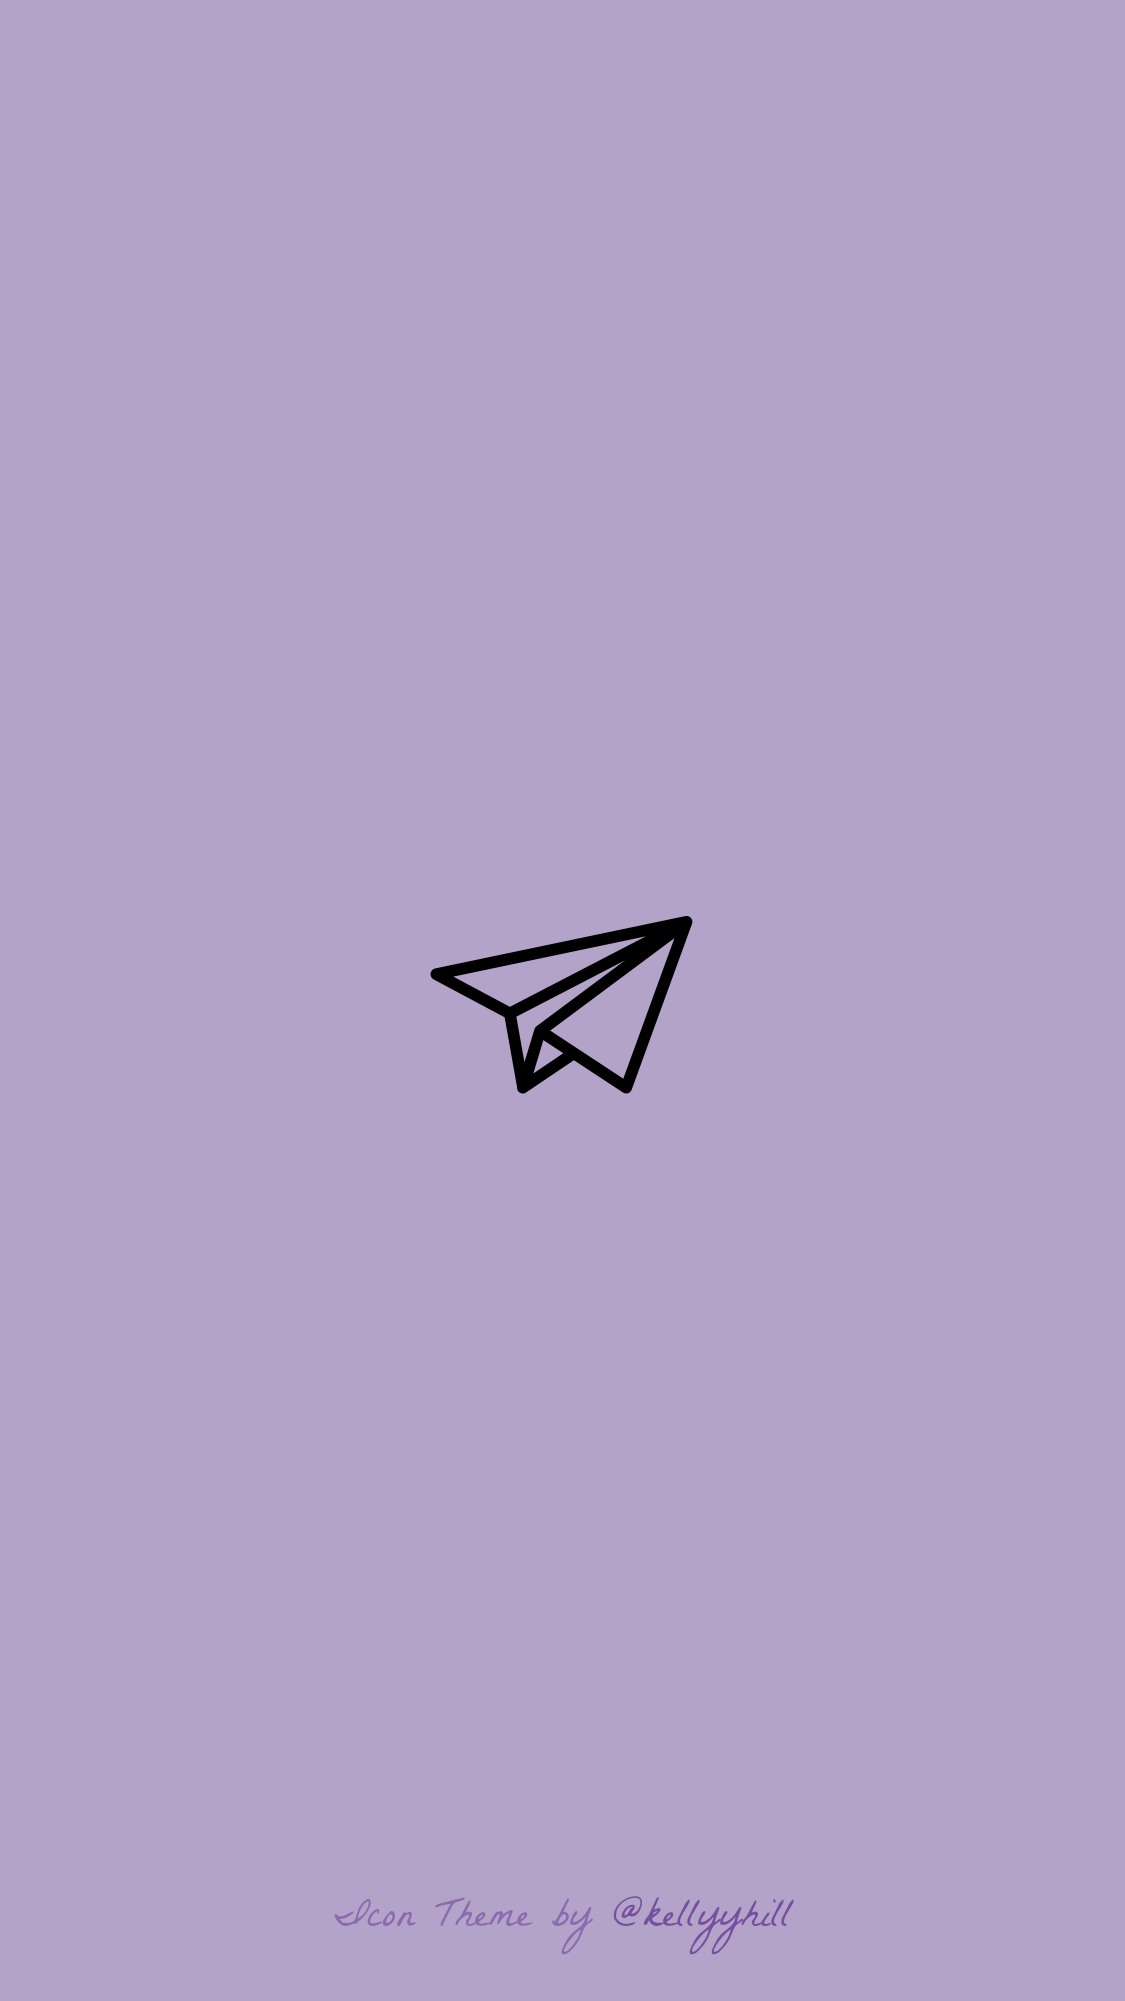 Kelly Hill Free Instagram Highlights Template Paradise Purple 04 Icons In 2020 Iphone Wallpaper Tumblr Aesthetic Instagram Highlight Icons Instagram Icons